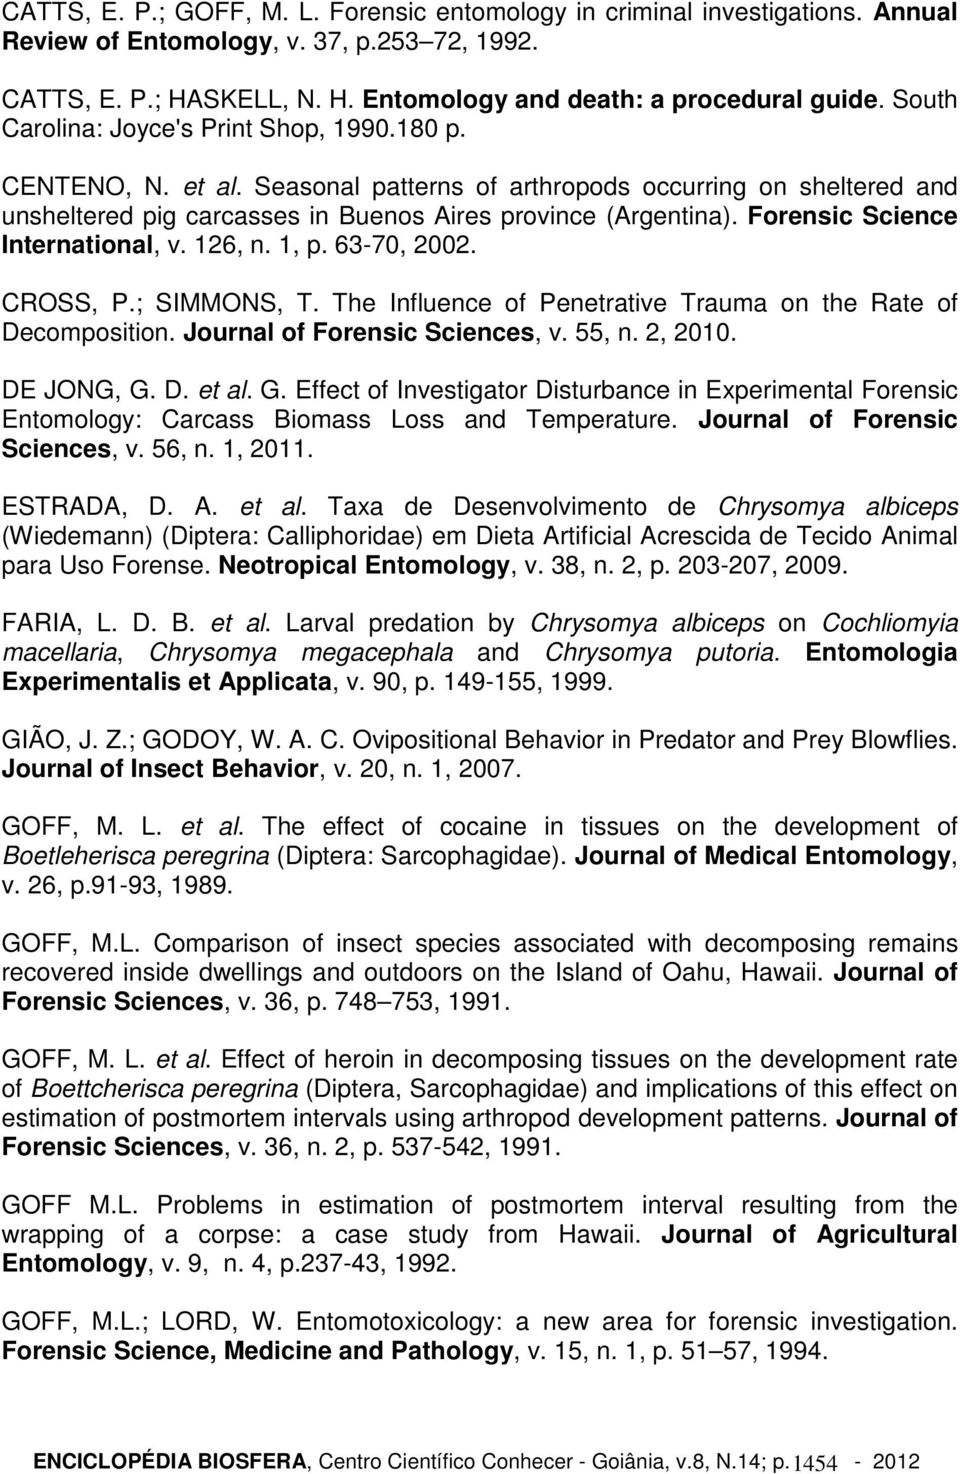 Forensic Science International, v. 126, n. 1, p. 63-70, 2002. CROSS, P.; SIMMONS, T. The Influence of Penetrative Trauma on the Rate of Decomposition. Journal of Forensic Sciences, v. 55, n. 2, 2010.